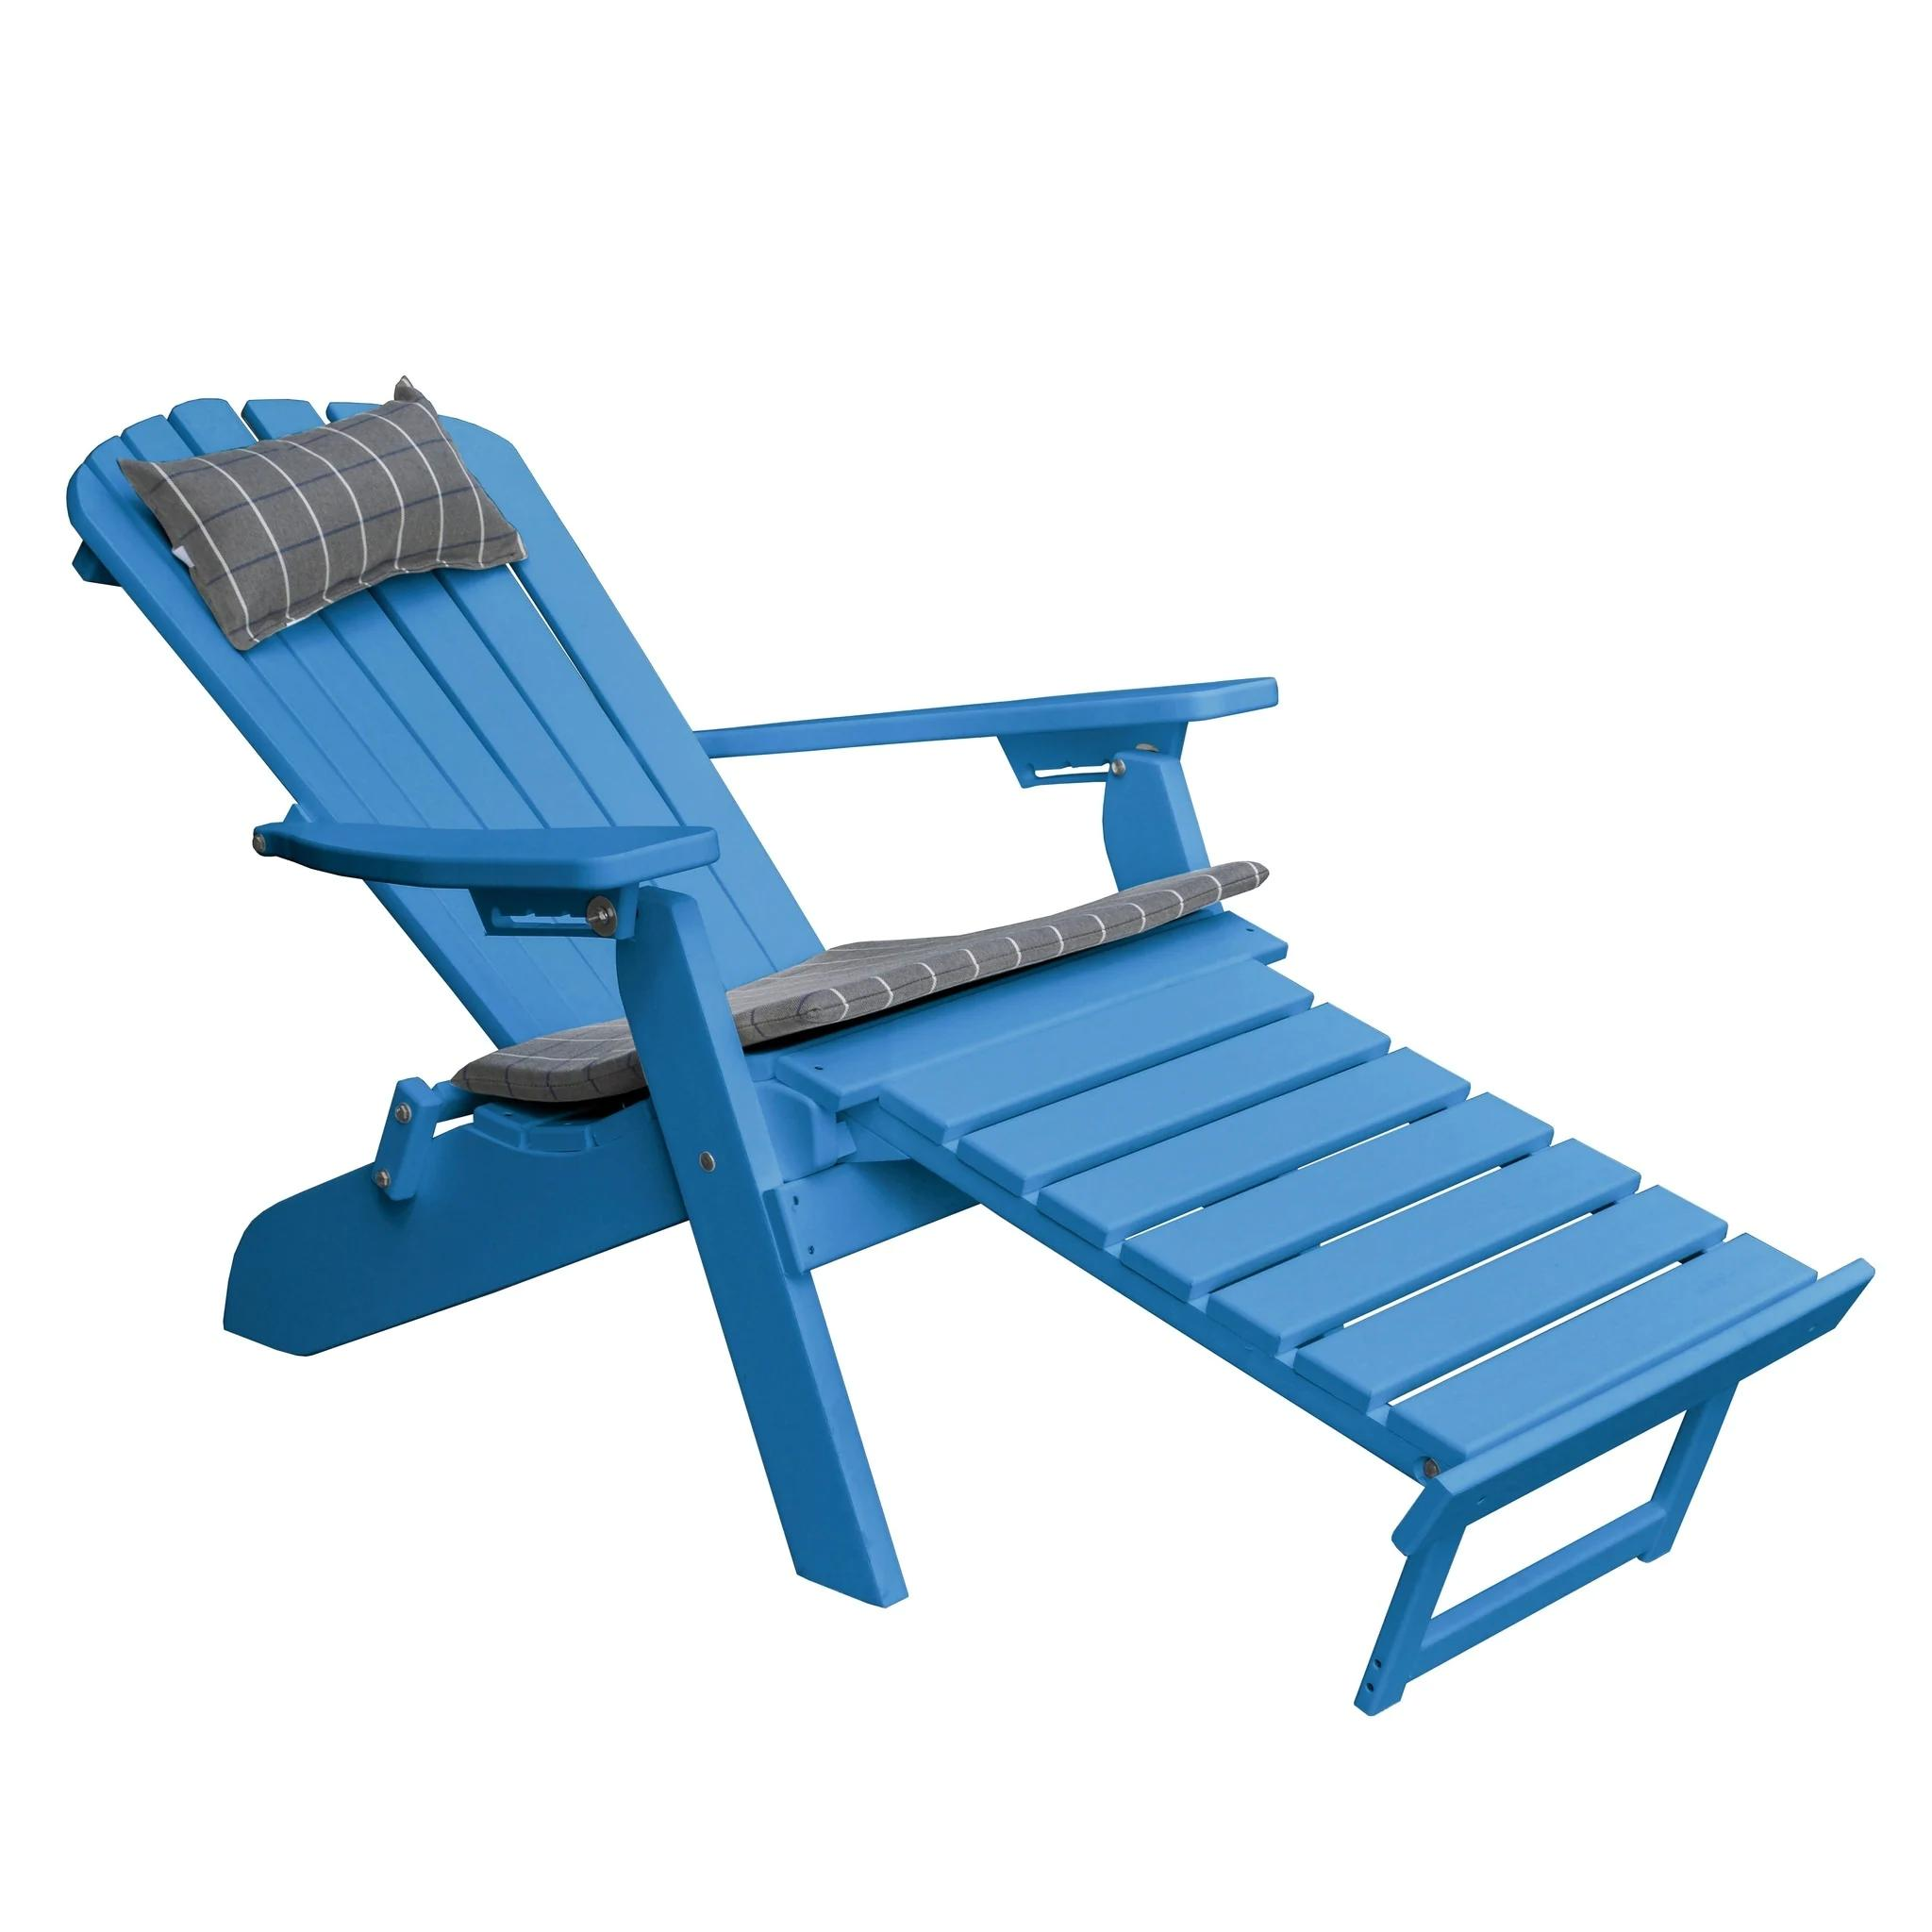 Folding/Reclining Adirondack Chair with Pullout Ottoman - Recycled Plastic